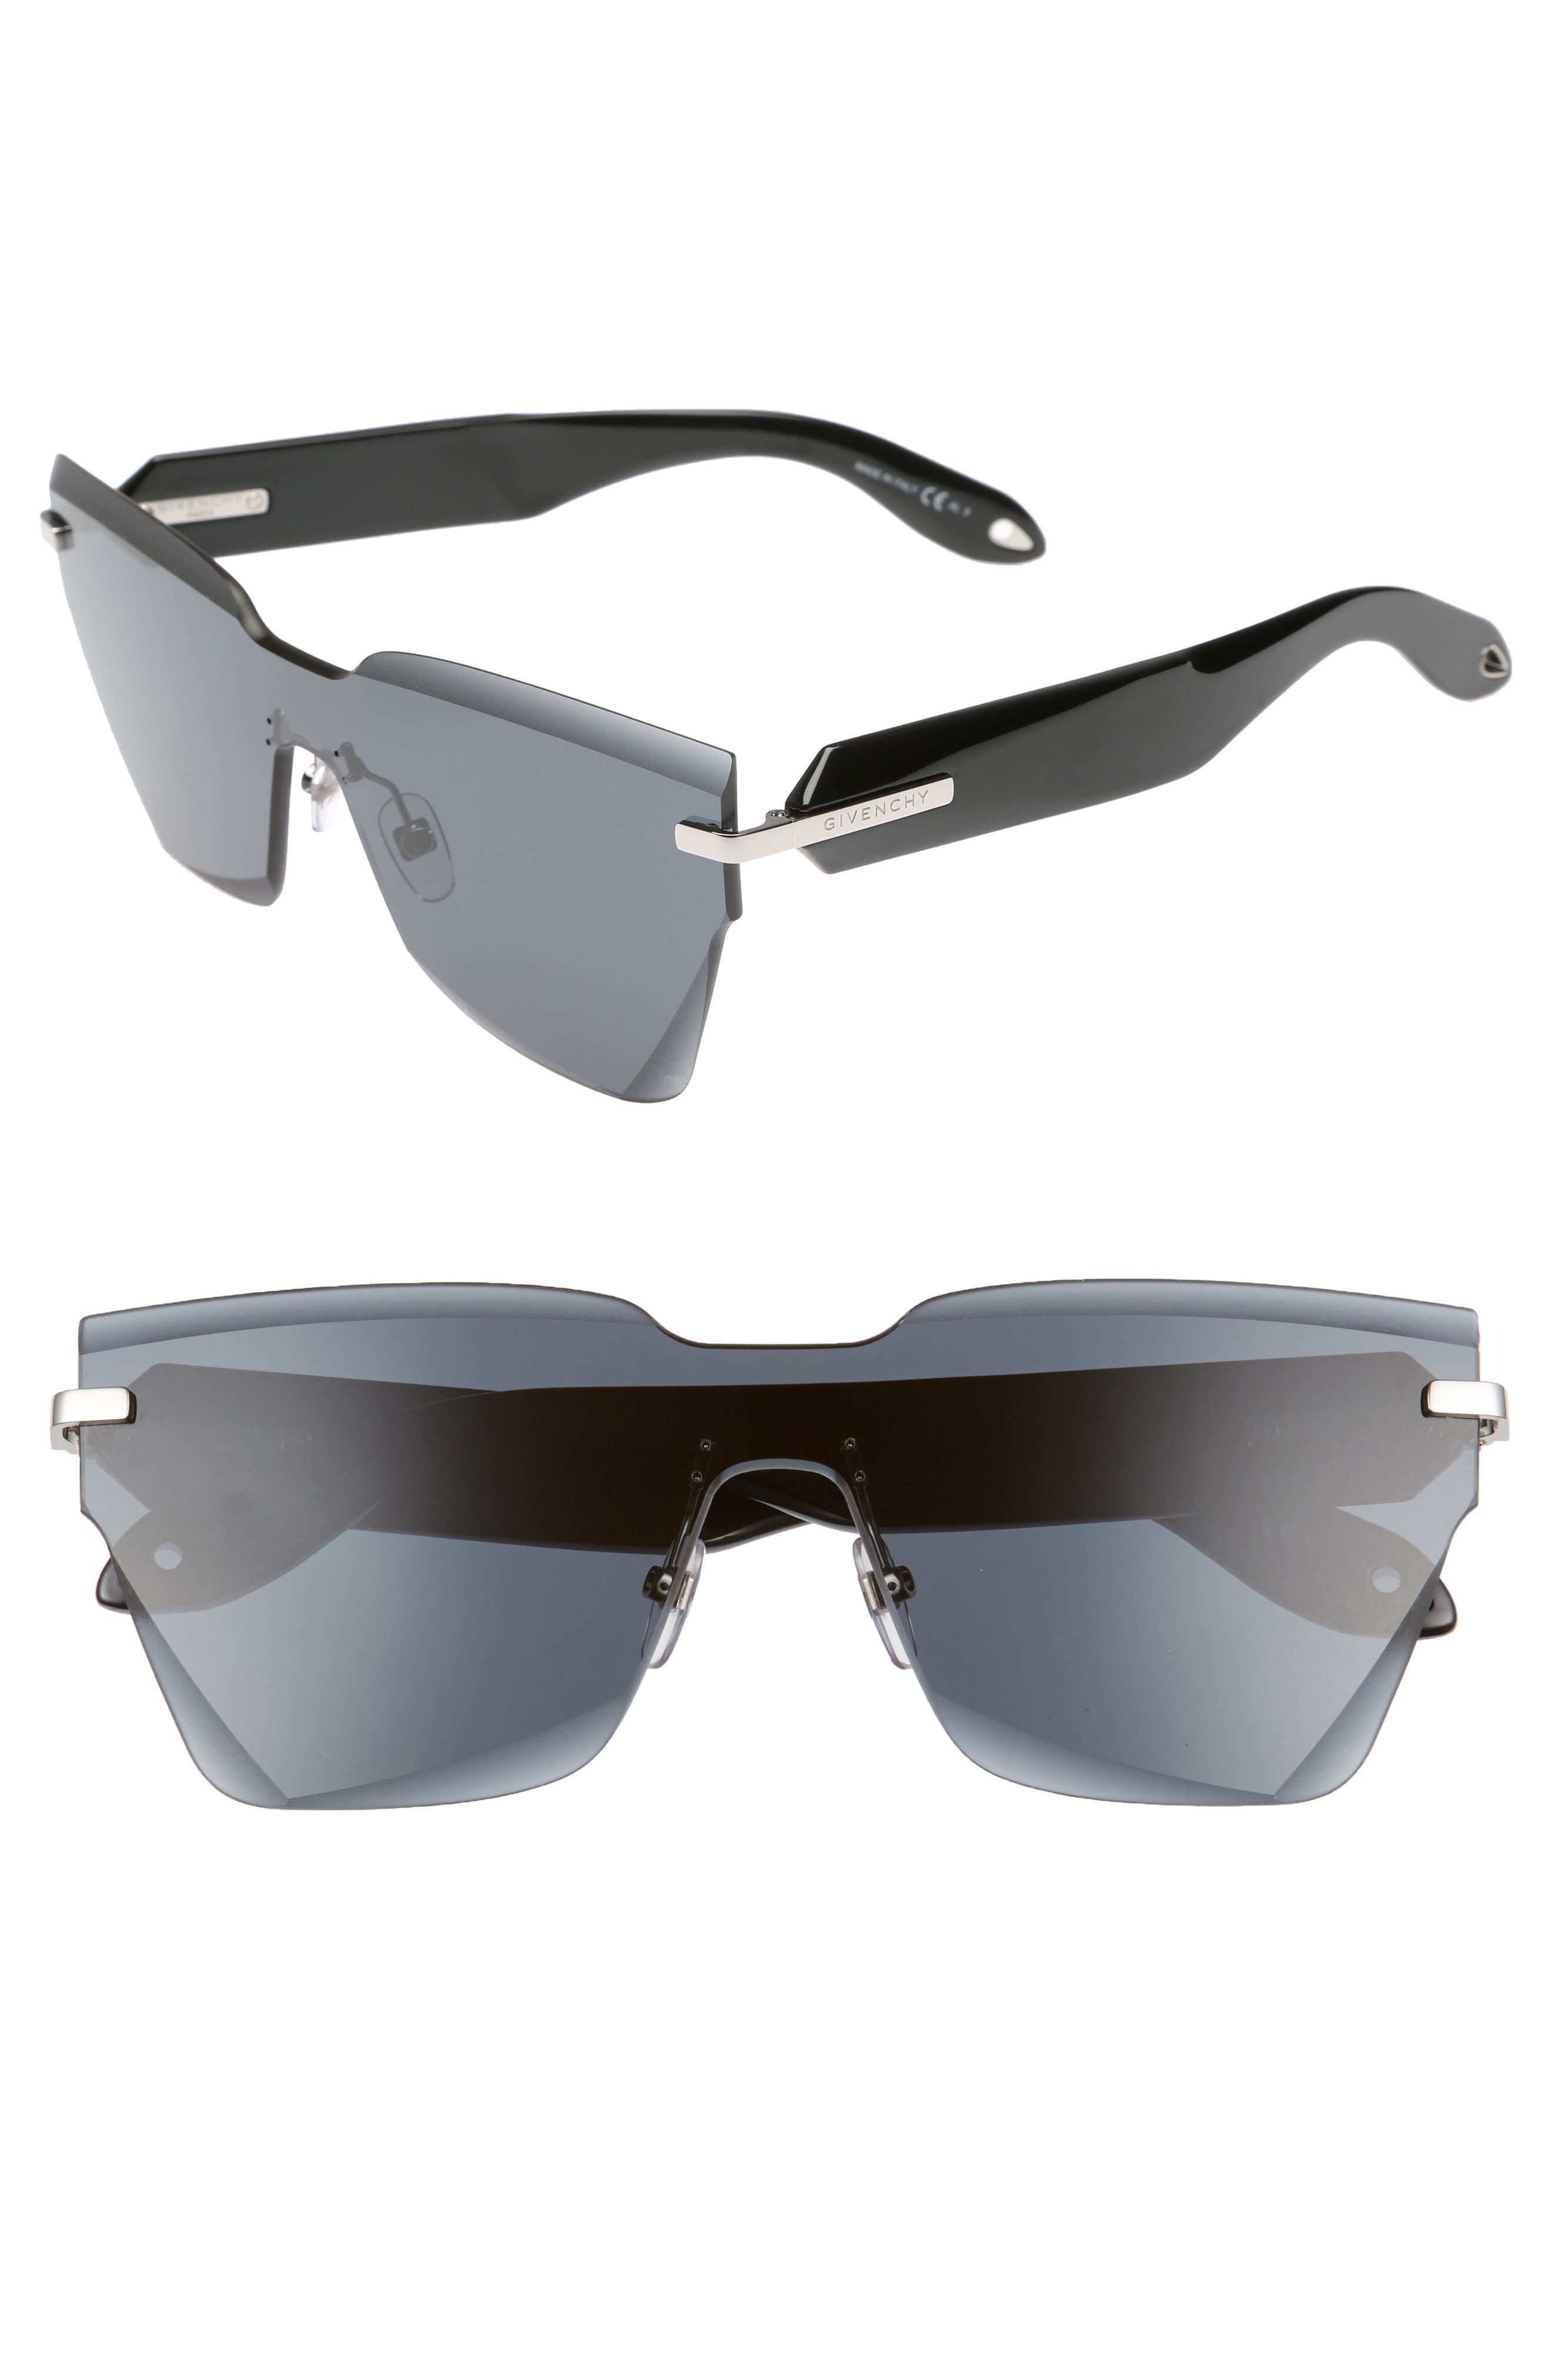 Alternate Image 1 Selected - Givenchy 55mm Rimless Shield Sunglasses